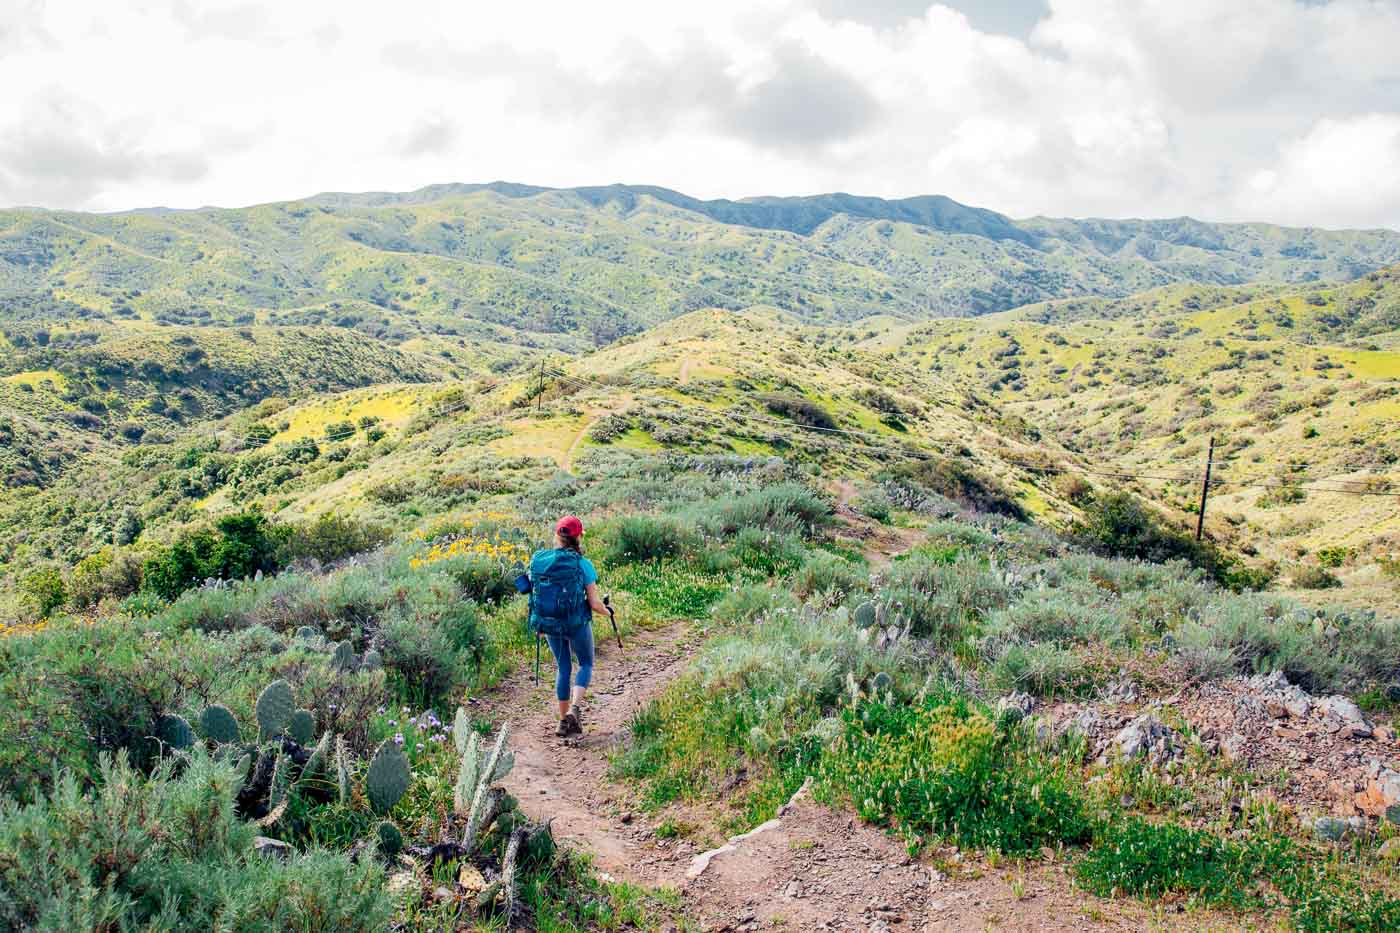 Woman hiking on a trail surrounded by cactus and sagebrush